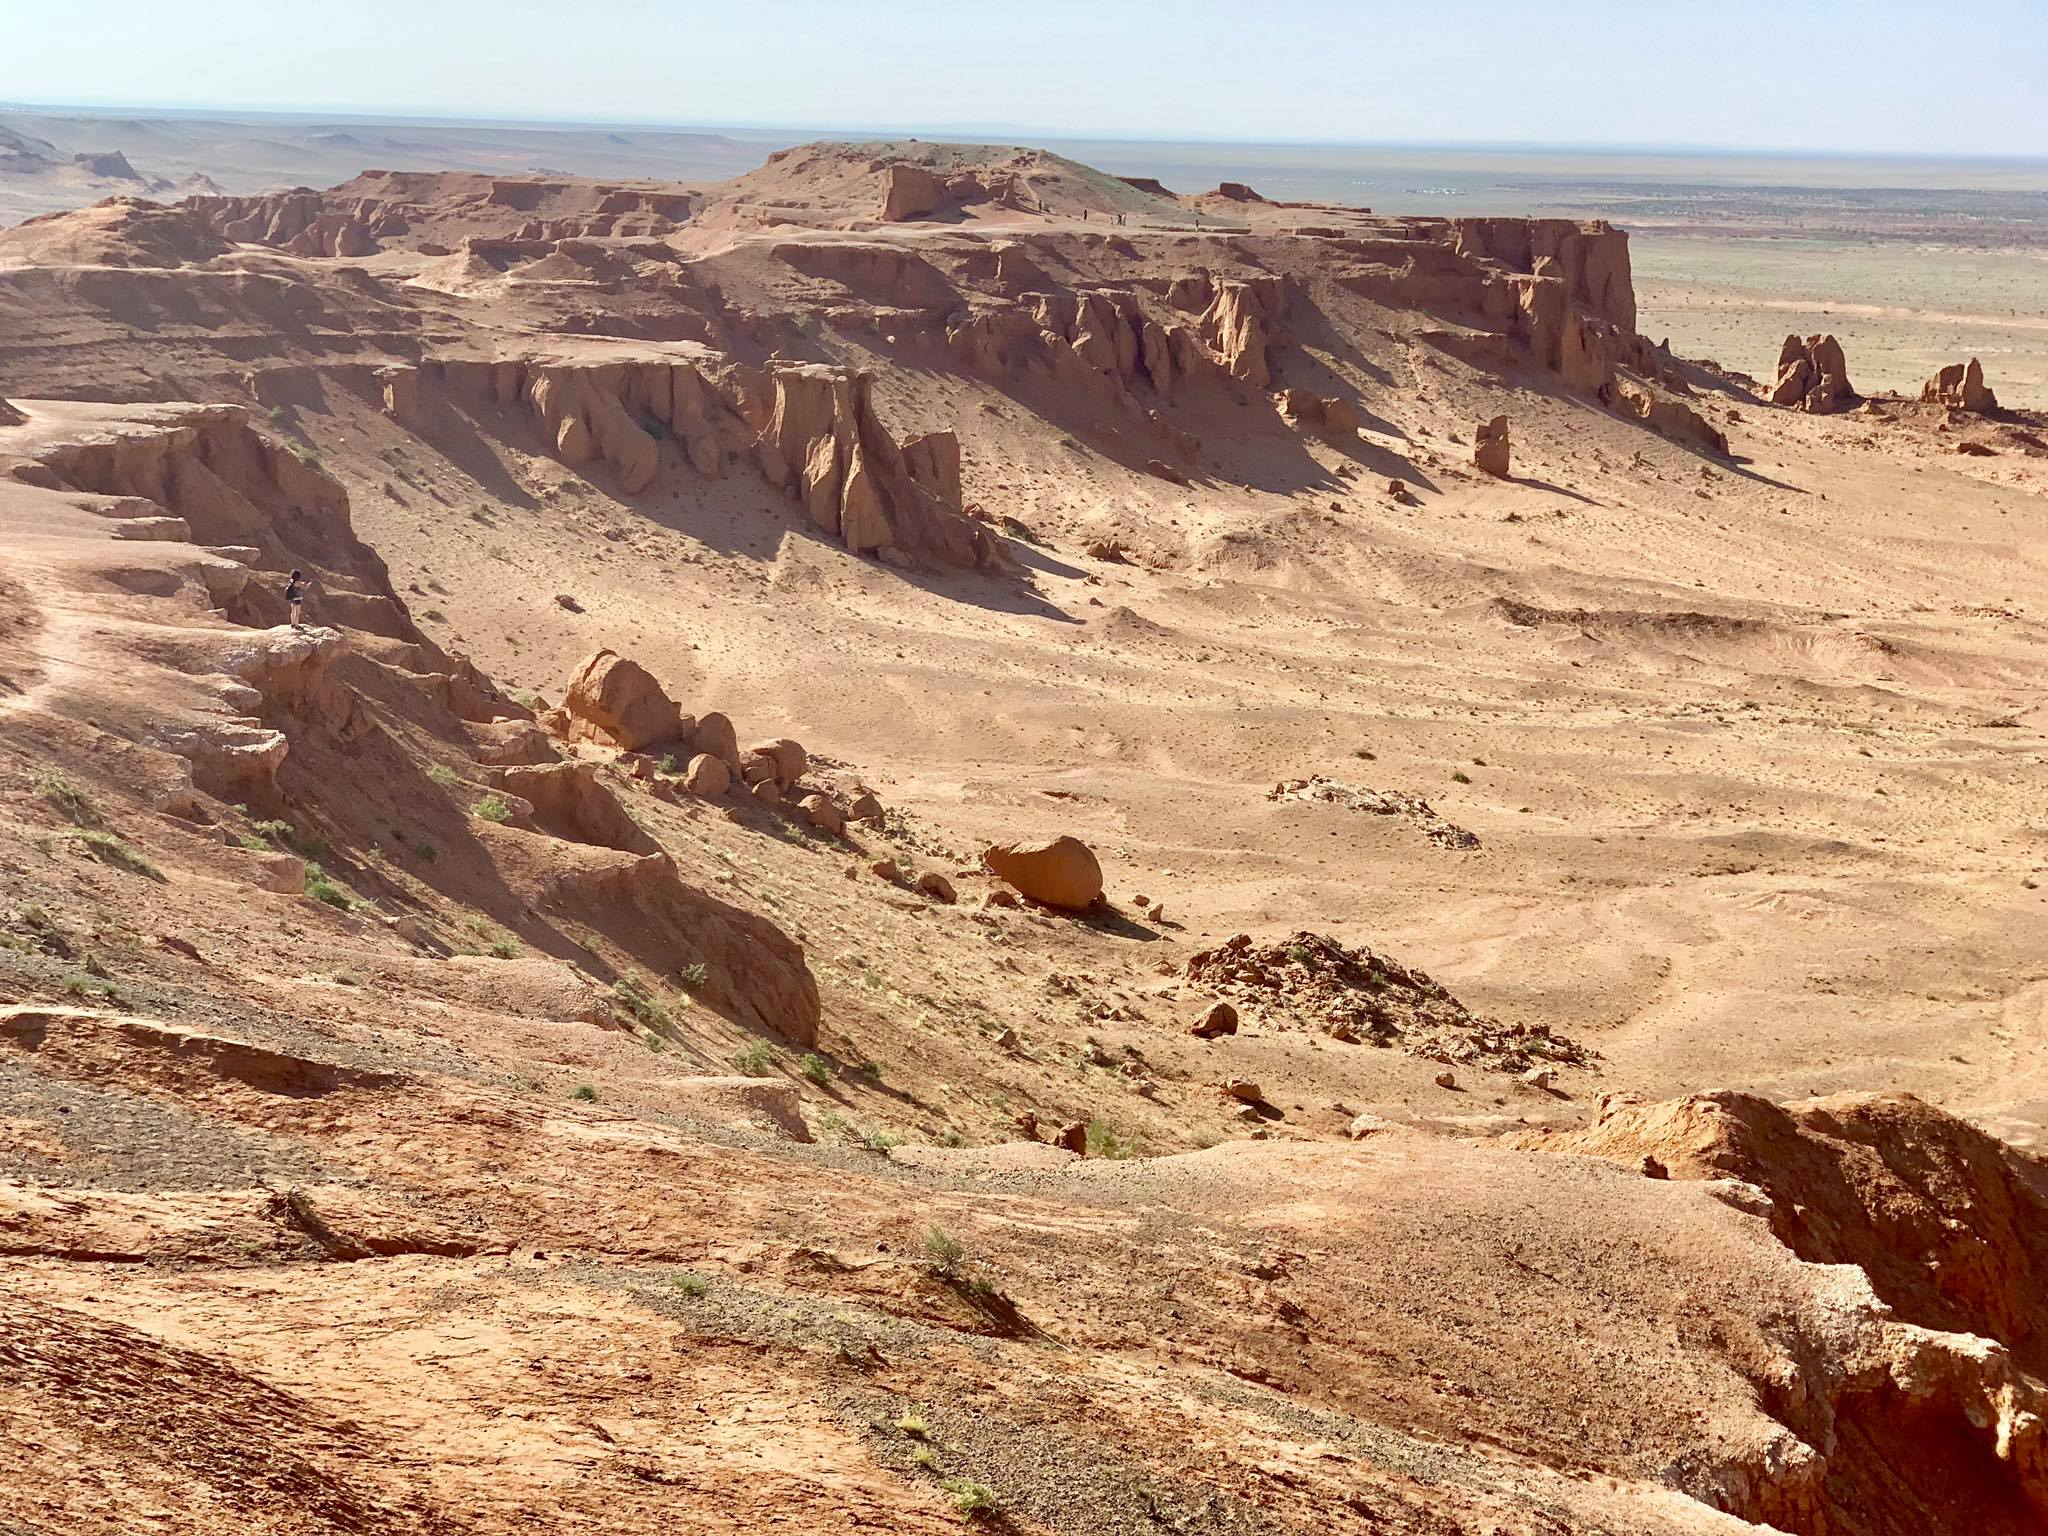 Kach Solo Travels in 2019 Gobi desert with Vast Steppe Mongolia!5.jpg